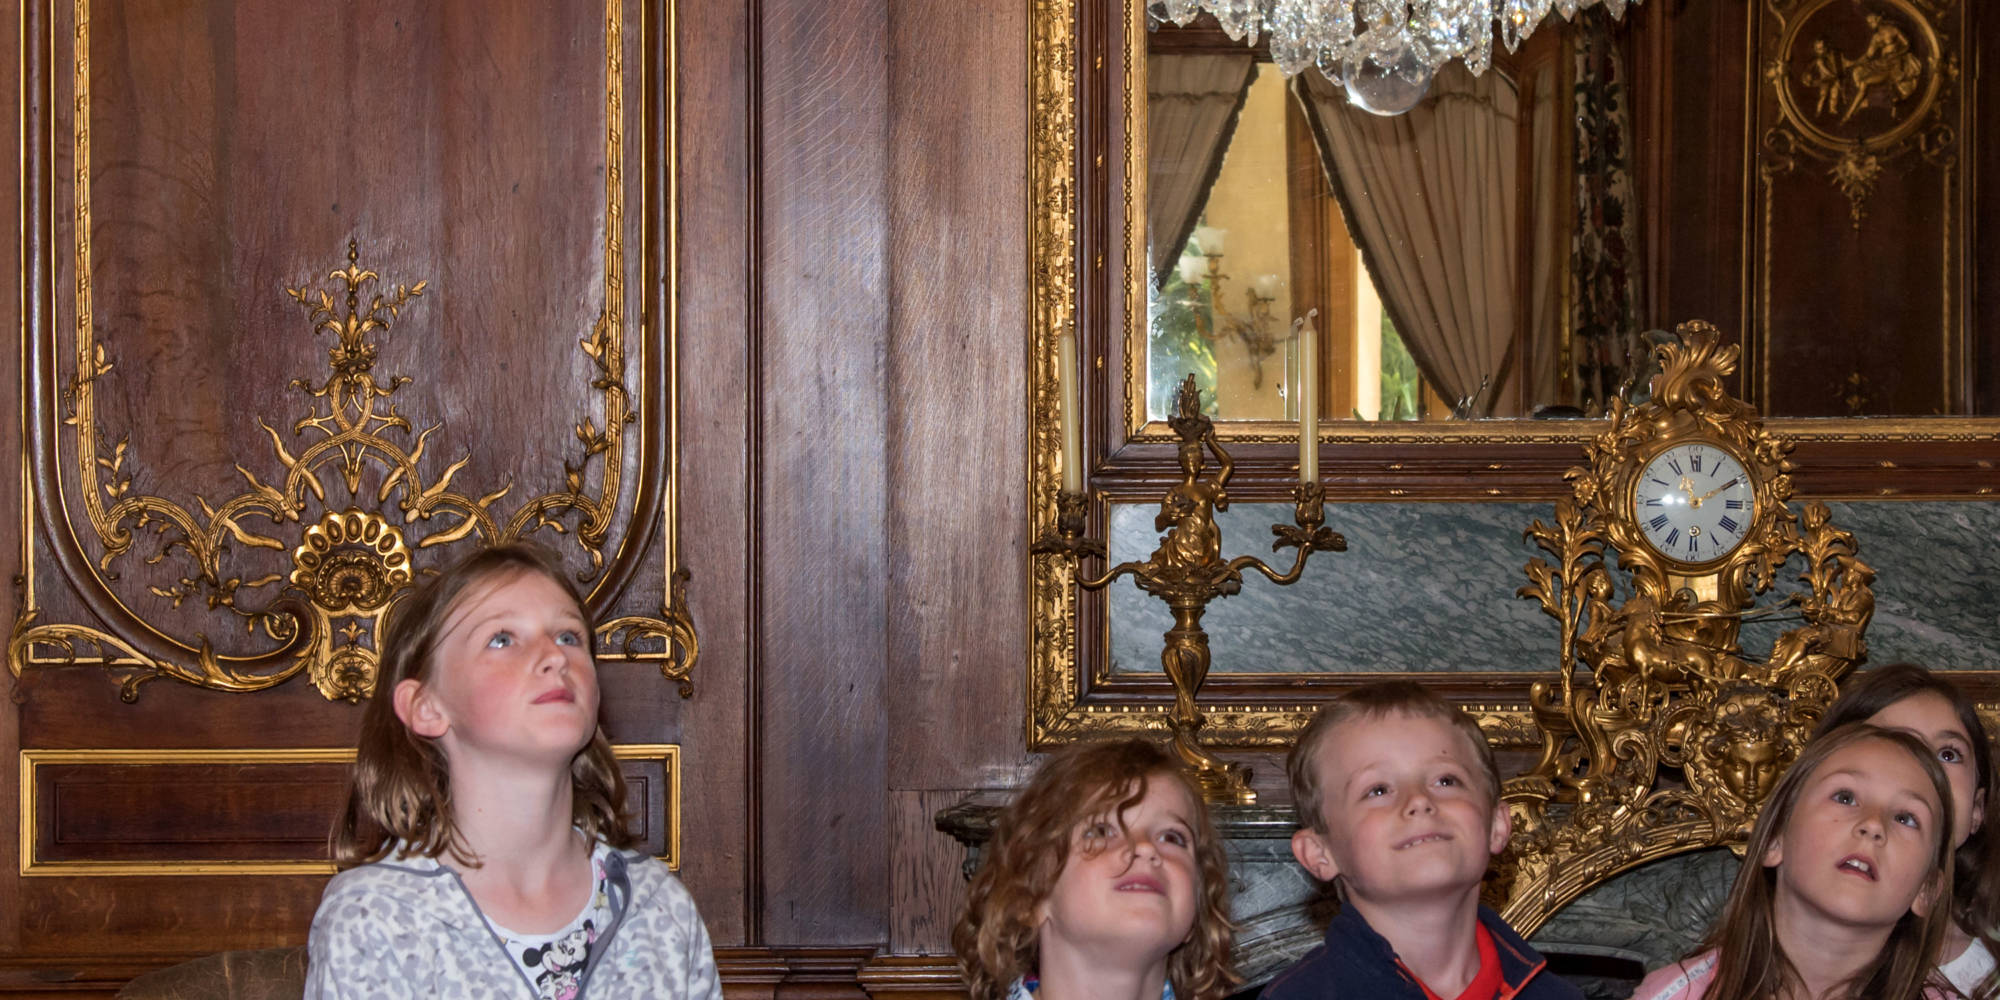 Children on the behind the scenes tour